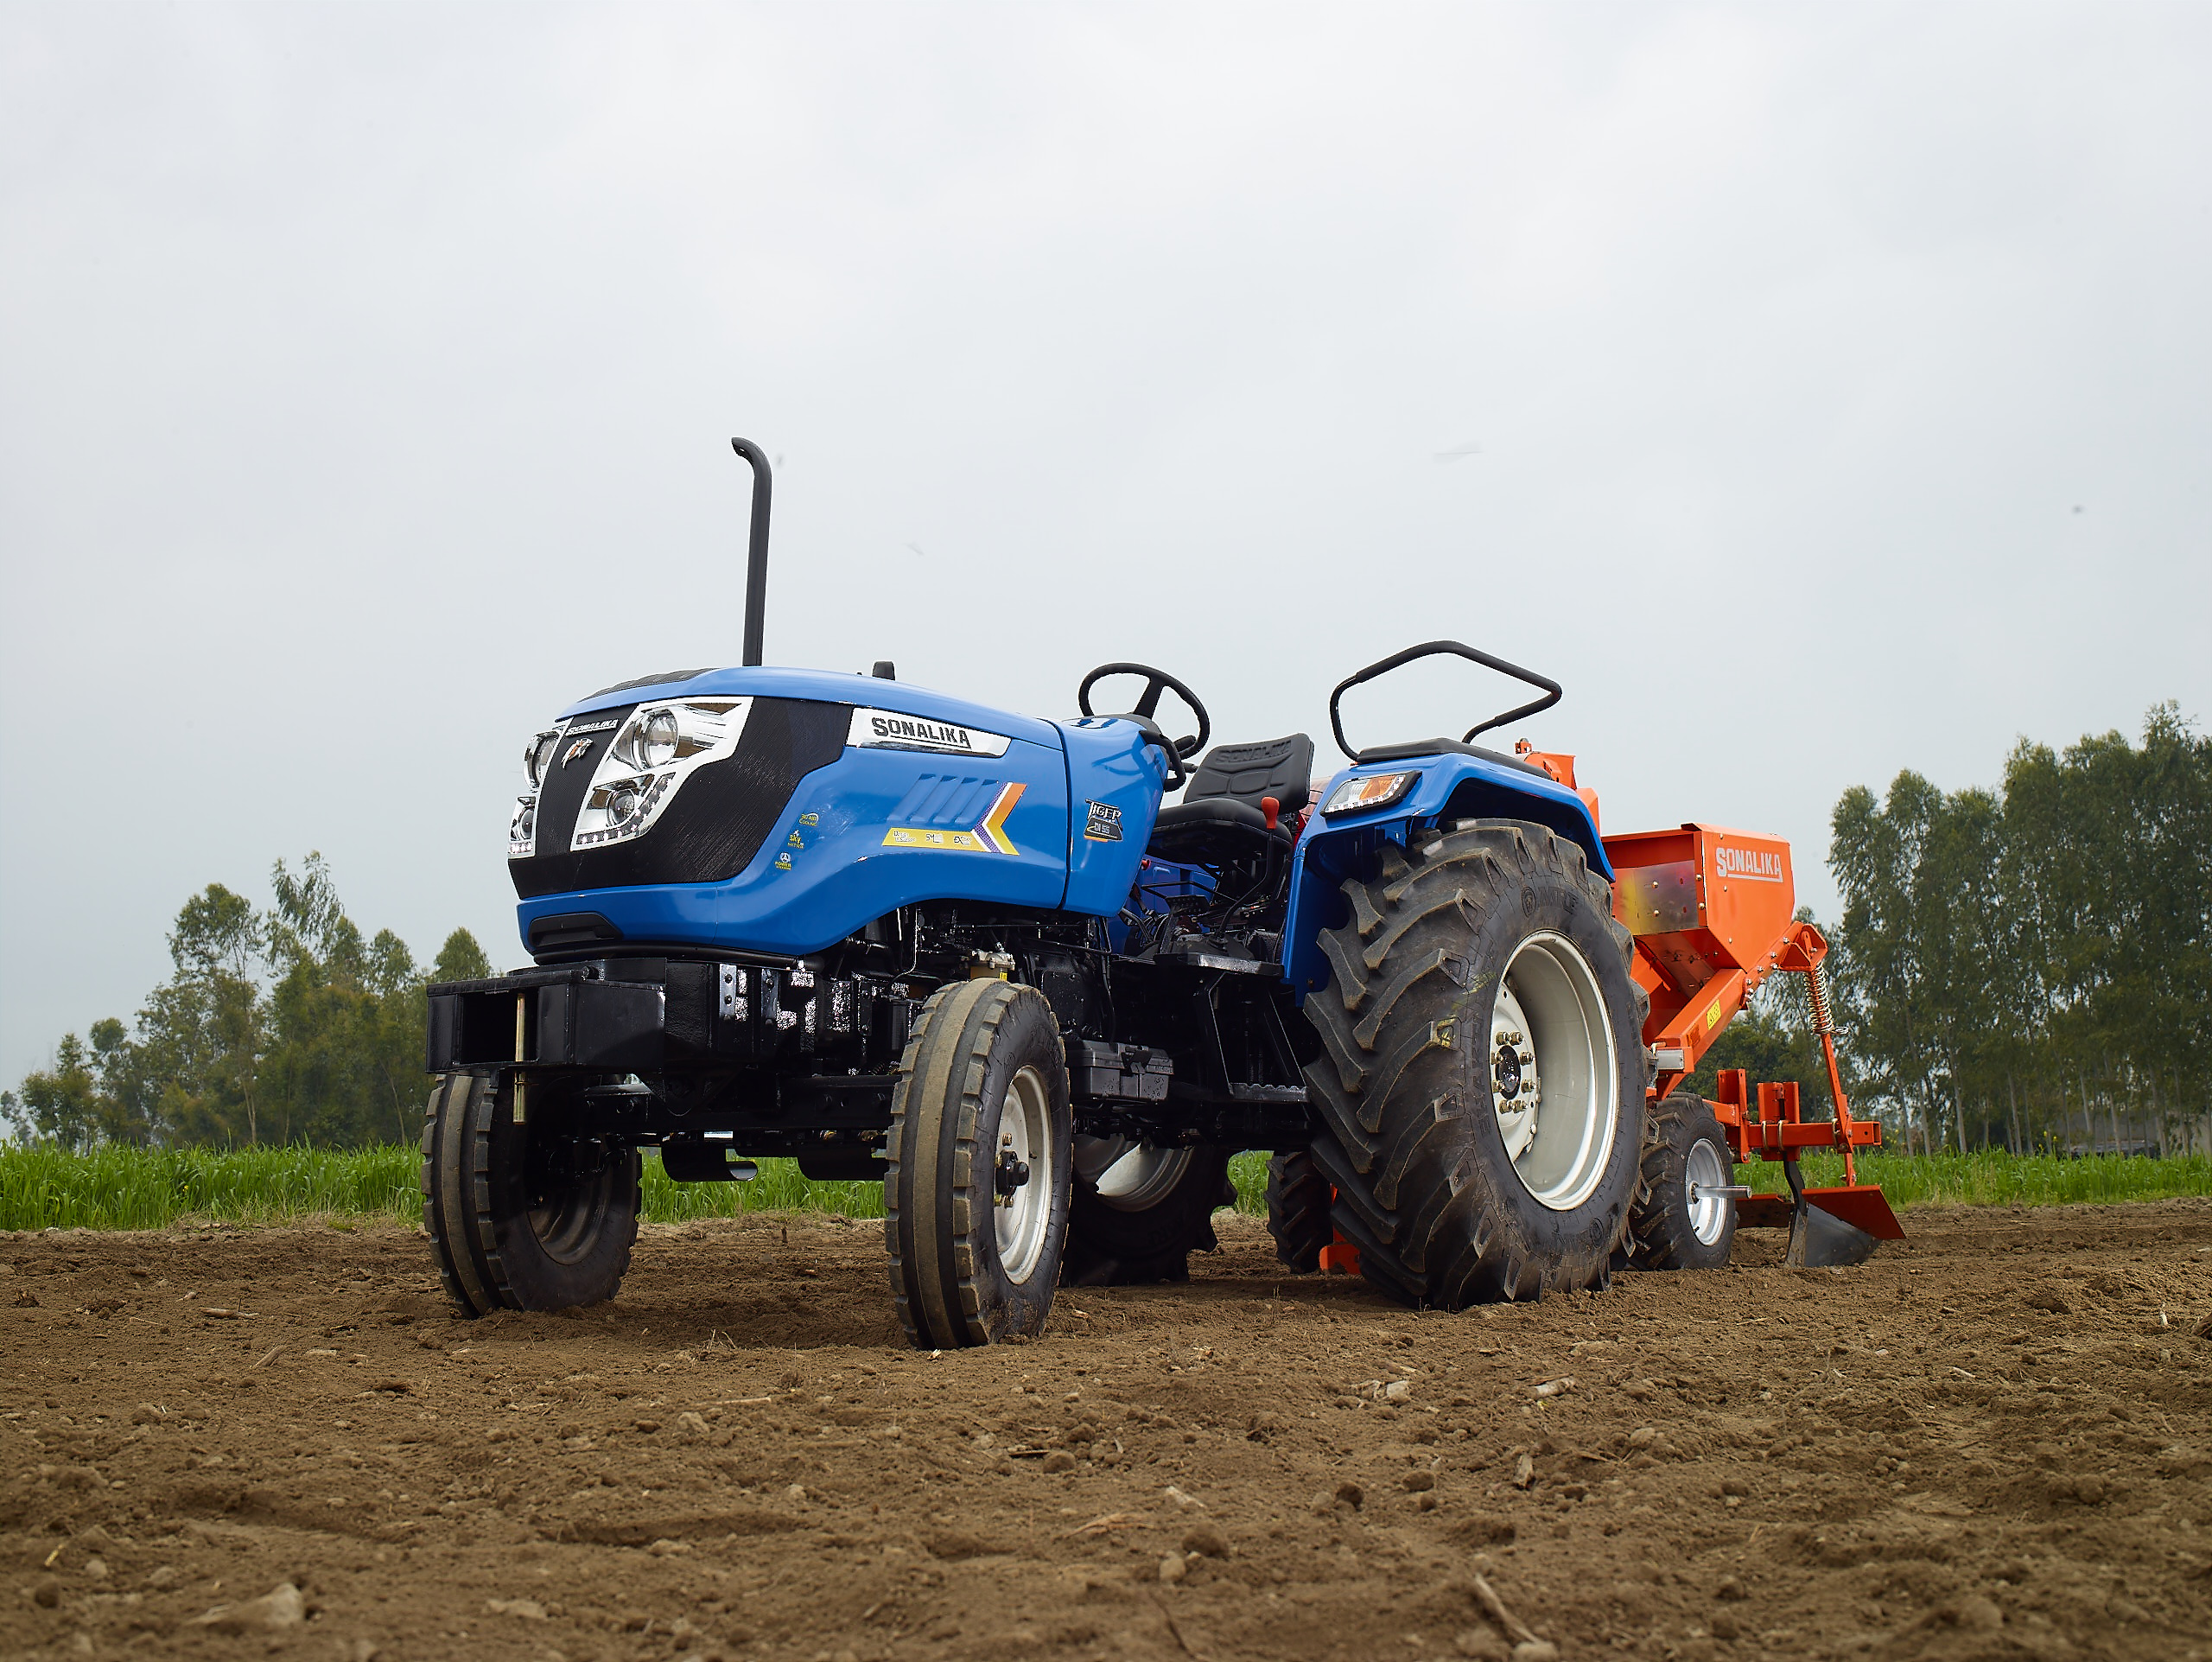 Sonalika Surpasses 1 lakh Domestic Tractor Sales and Crosses Highest Ever Sales in Just 11 months